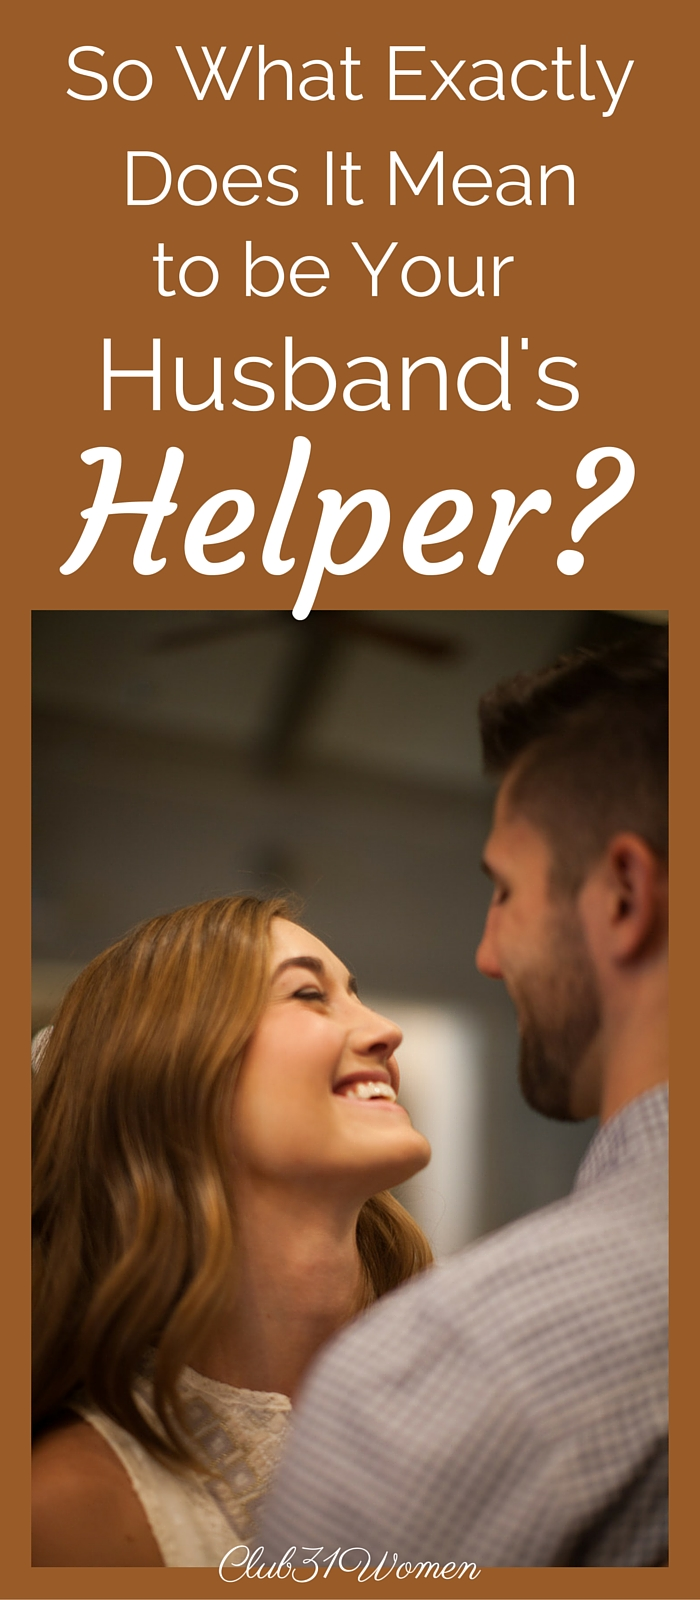 So What Exactly Does It Mean to Be Your Husband's Helper